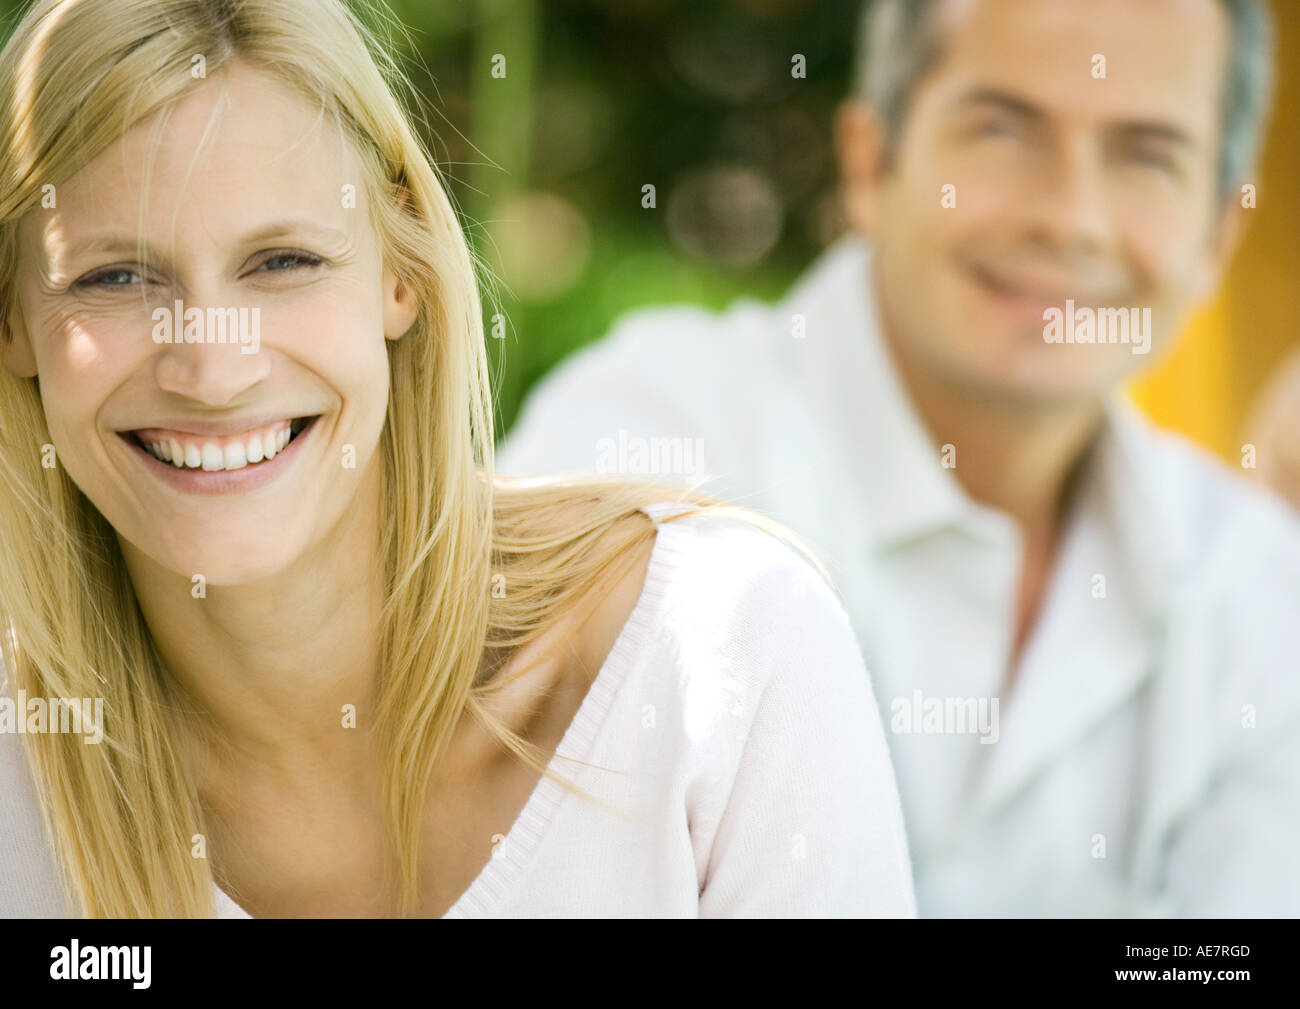 Woman smiling, man in background, portrait - Stock Image